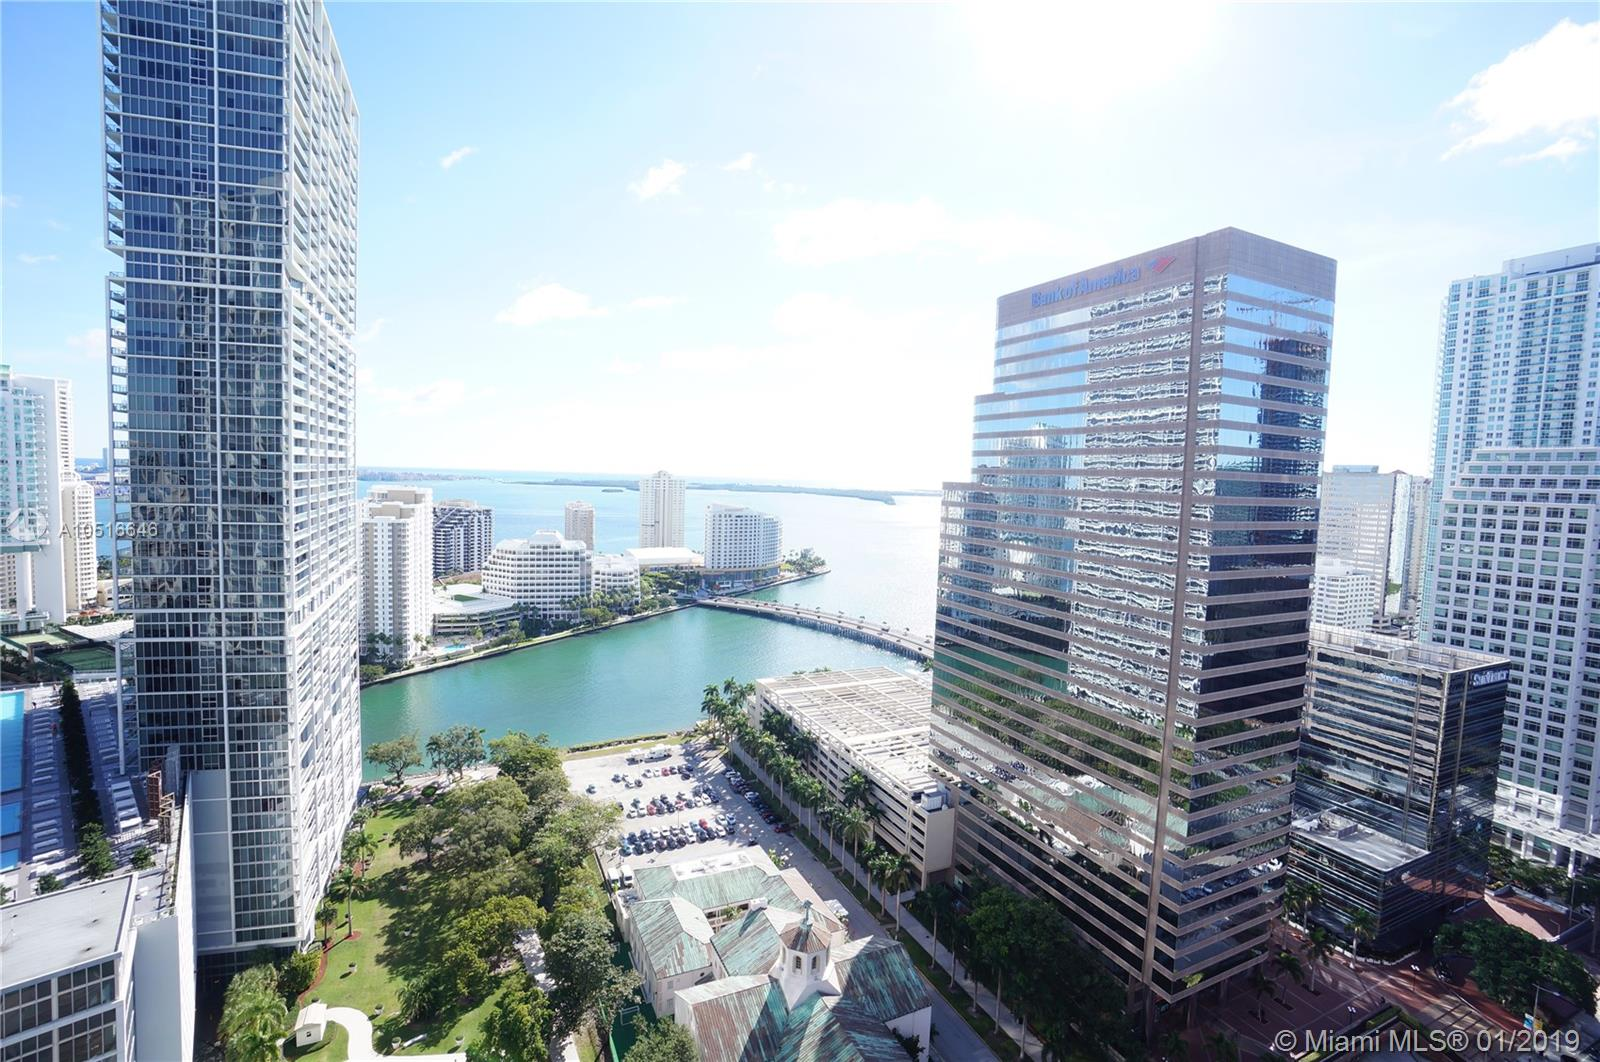 500 Brickell West Tower #3300 - 500 Brickell Ave #3300, Miami, FL 33131